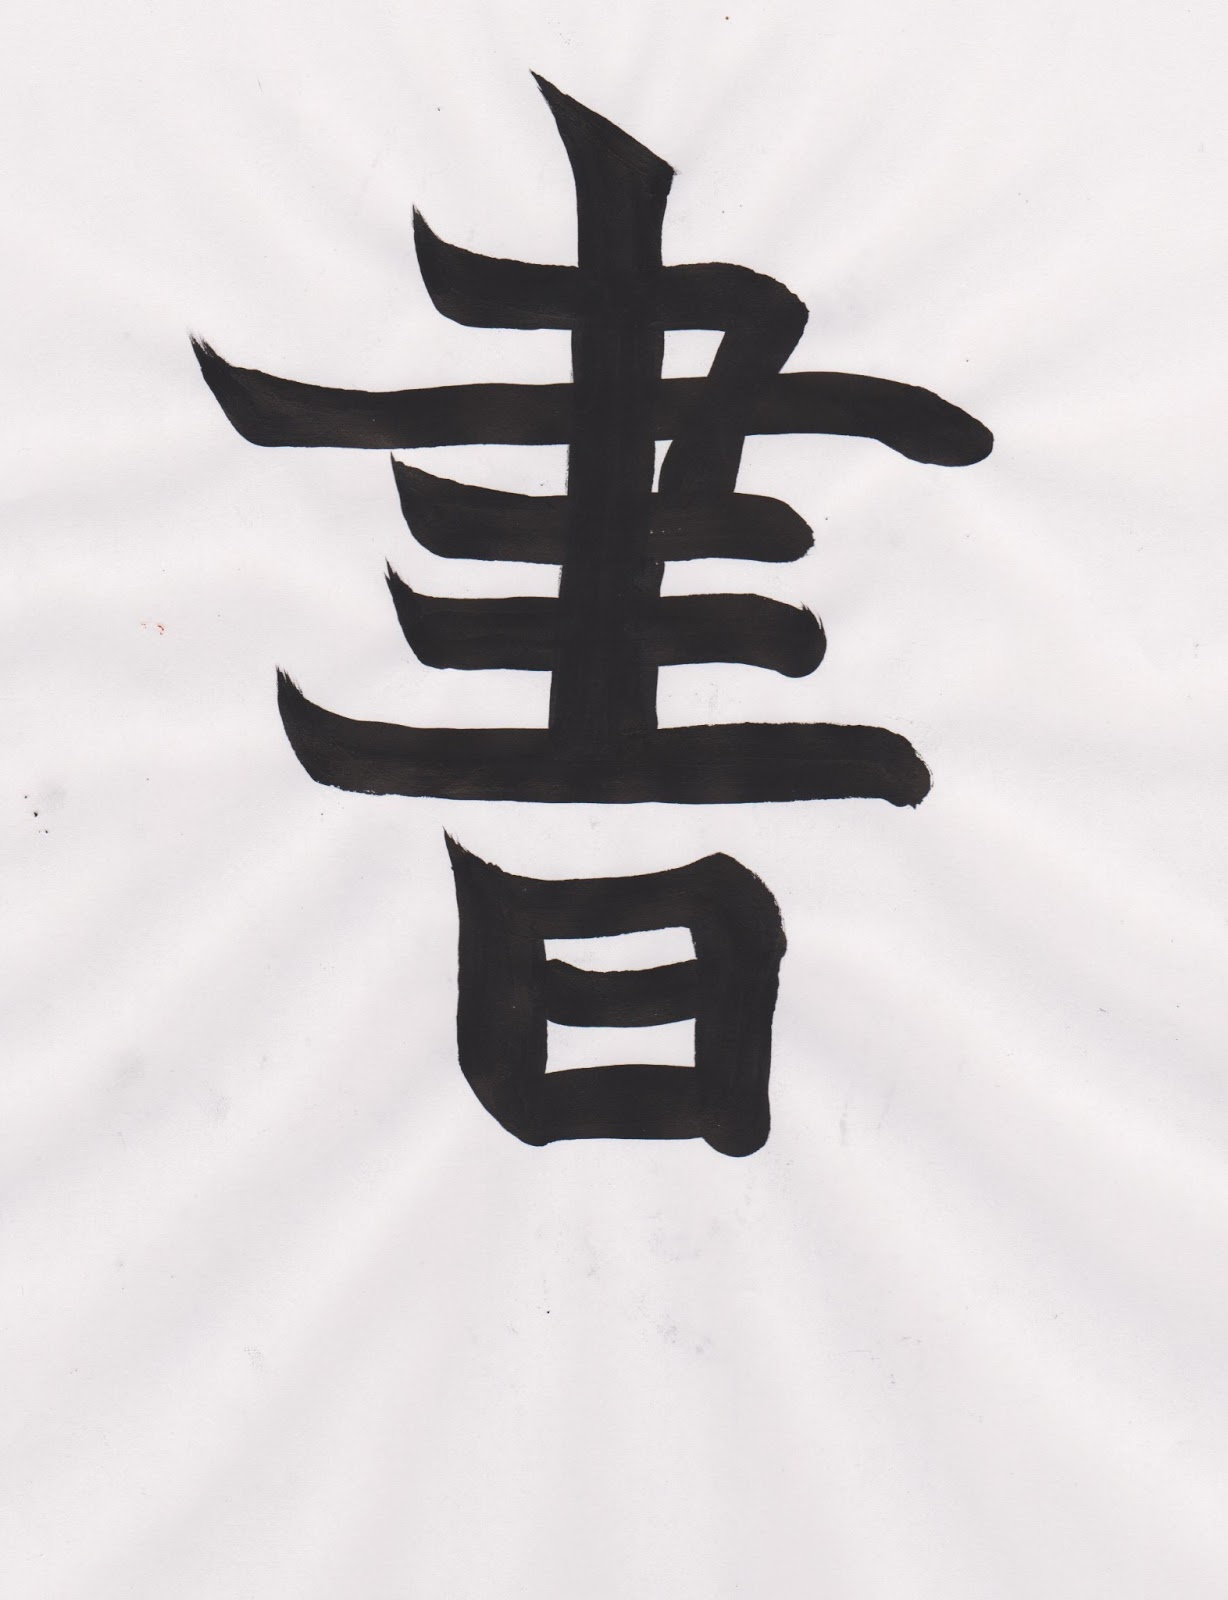 Calligraphy Alphabet Japanese Calligraphy